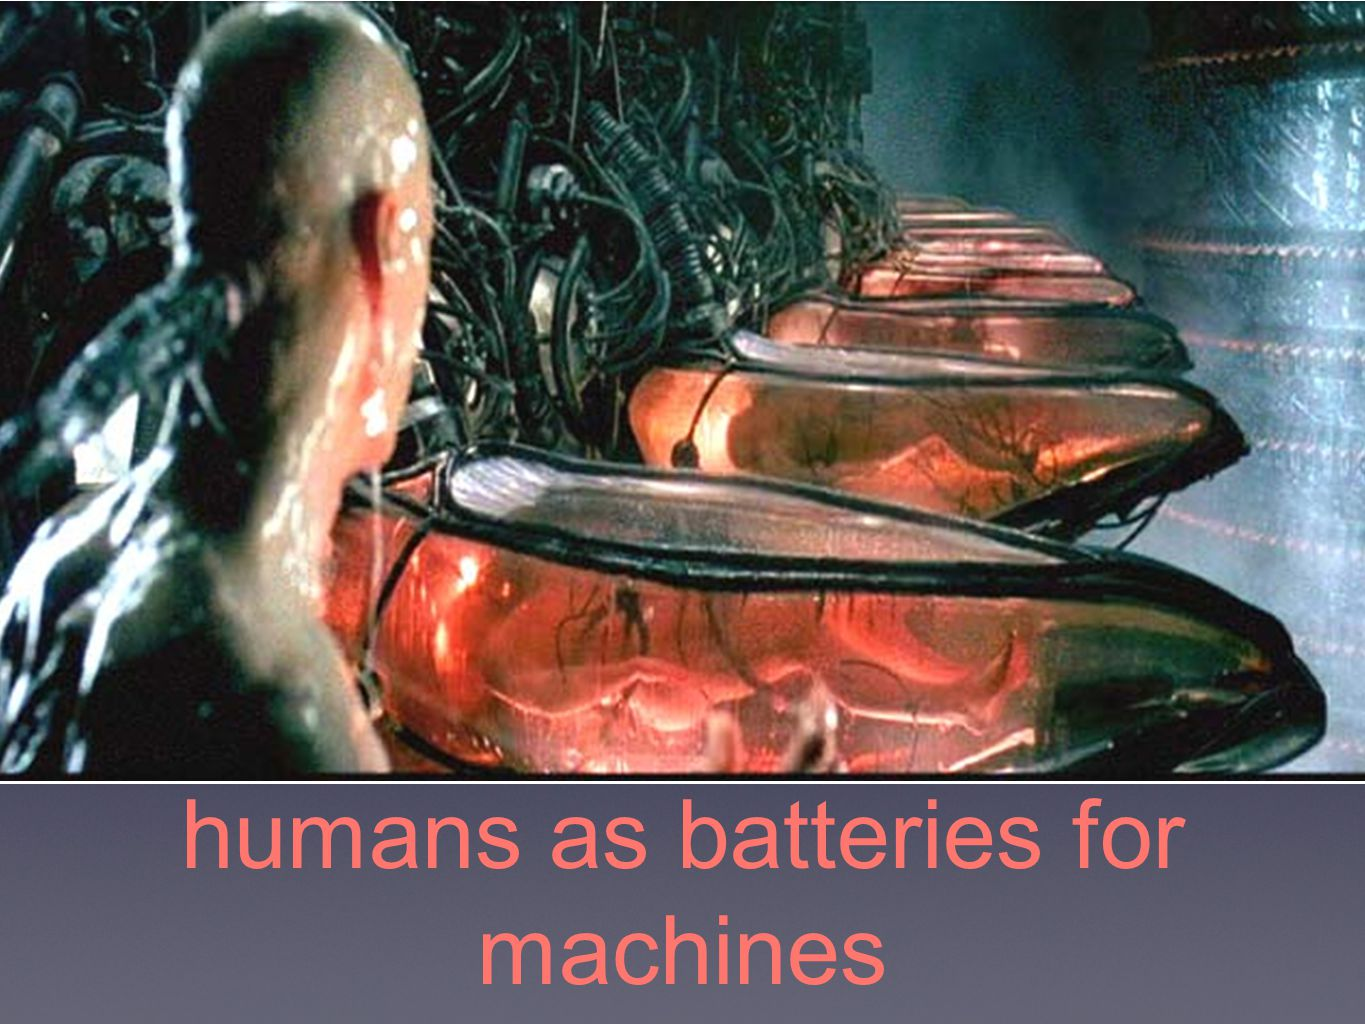 humans as batteries for machines